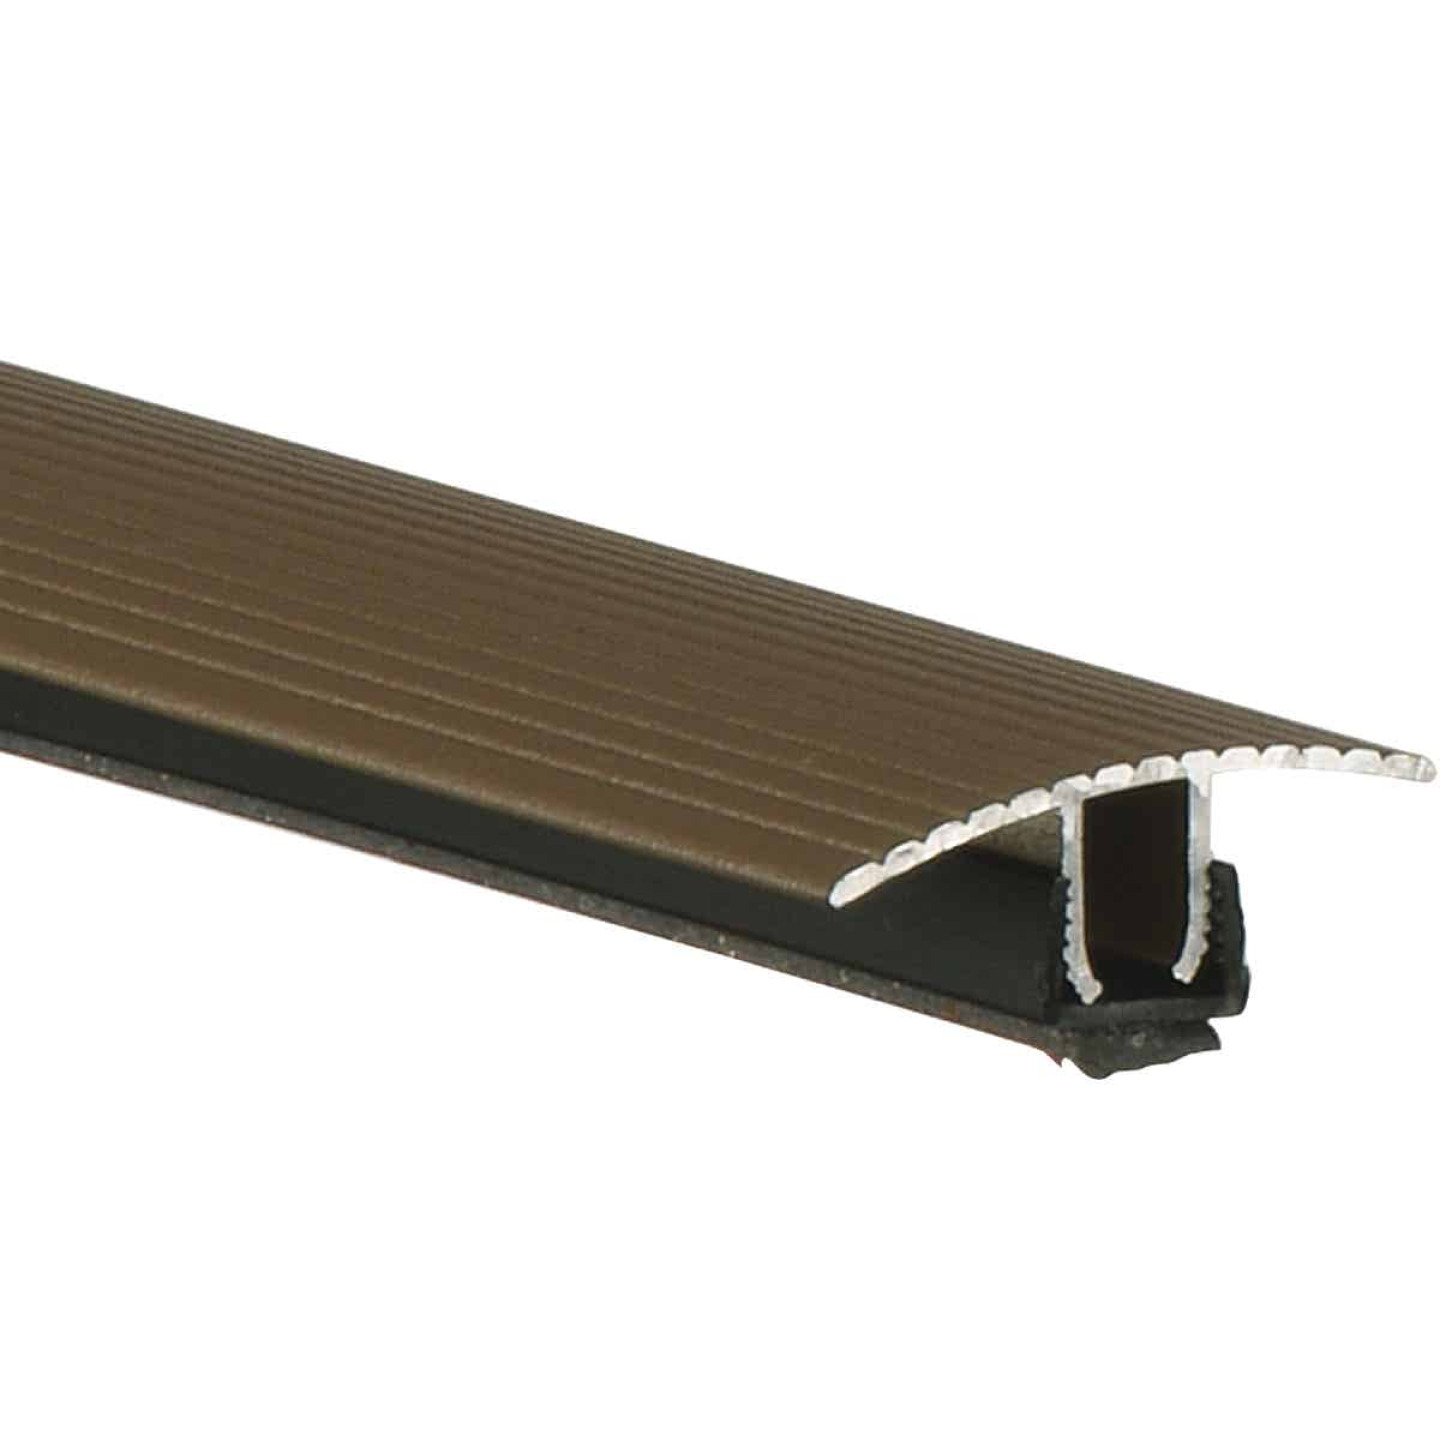 Frost King Satin Cocoa 1-1/2 In. x 3 Ft. Seam Binder Image 1